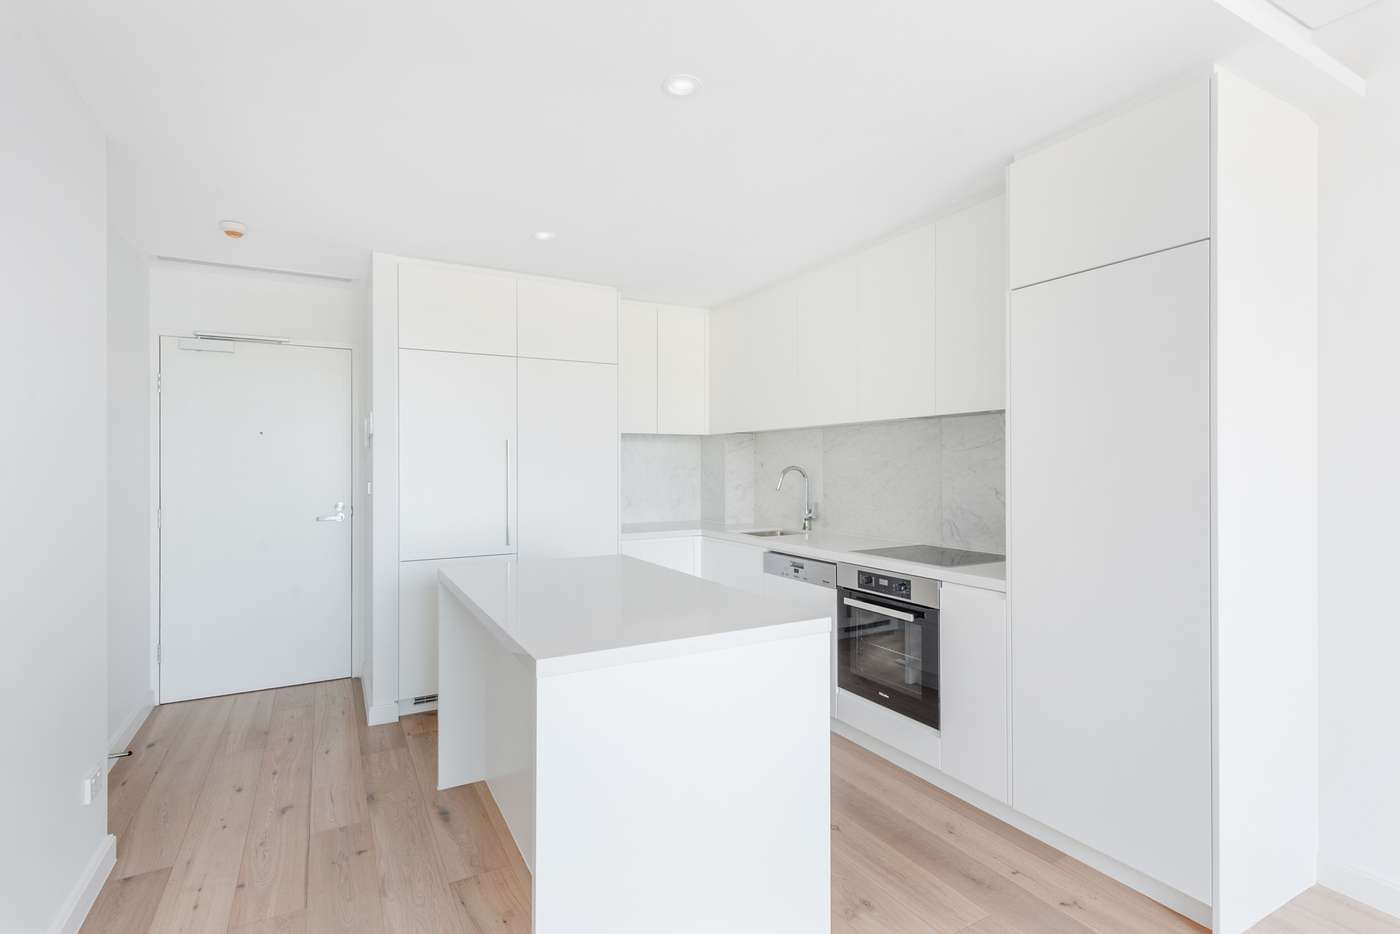 Main view of Homely apartment listing, 102/61 Parraween Street, Cremorne NSW 2090